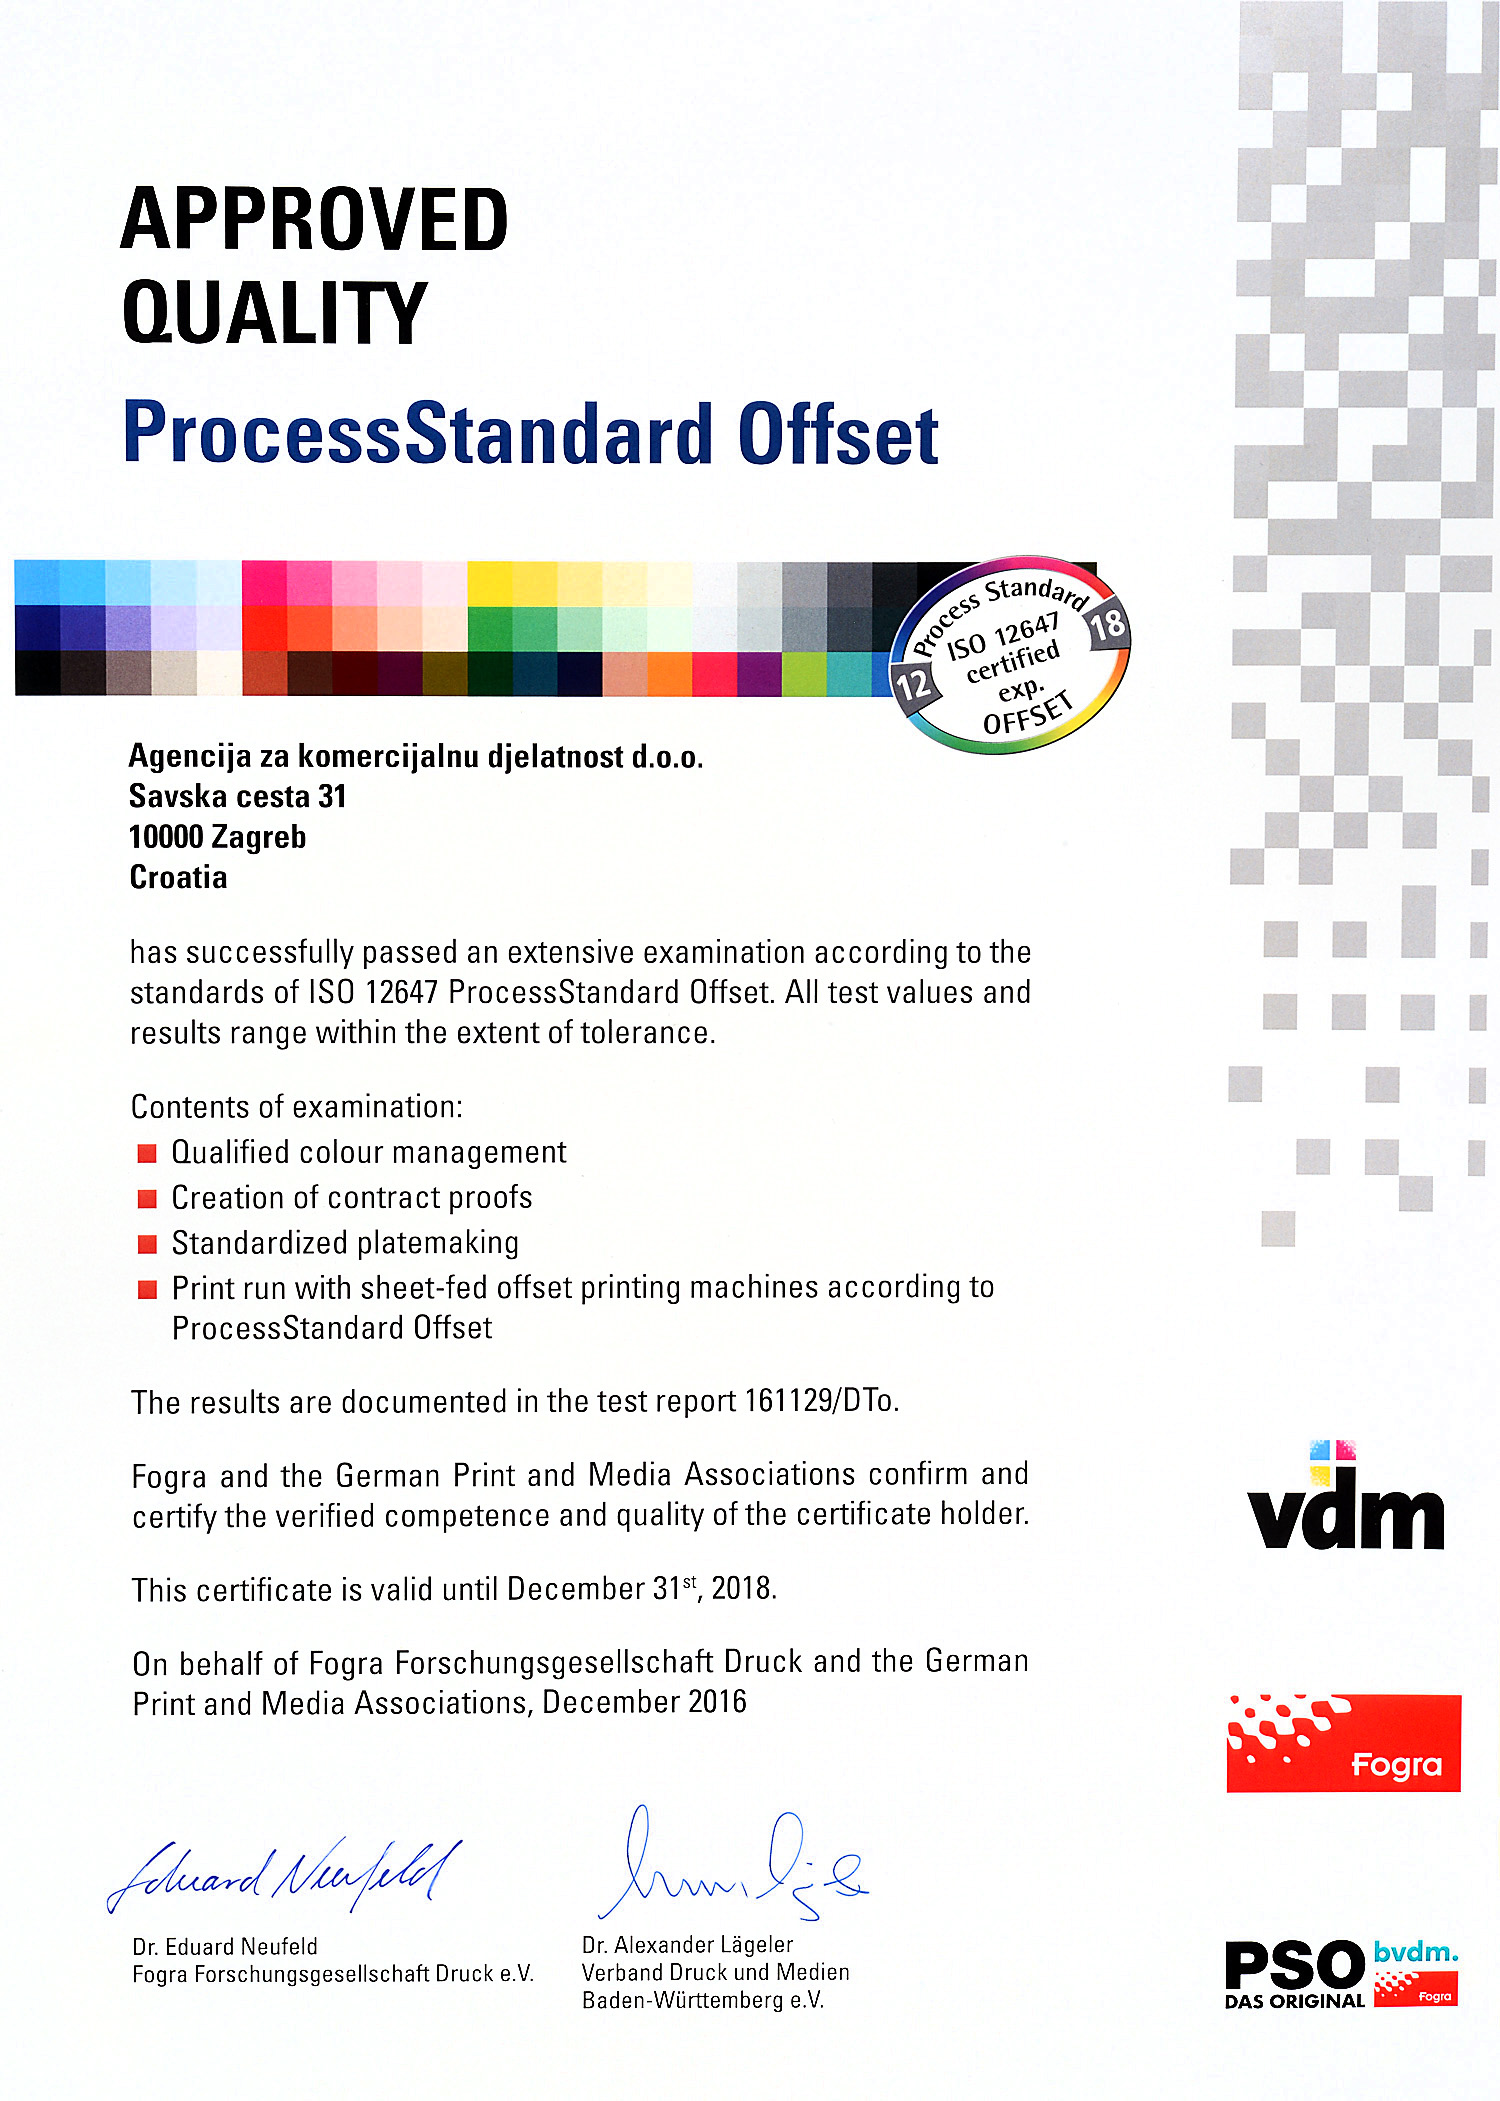 Process Standard Offset ISO 12647